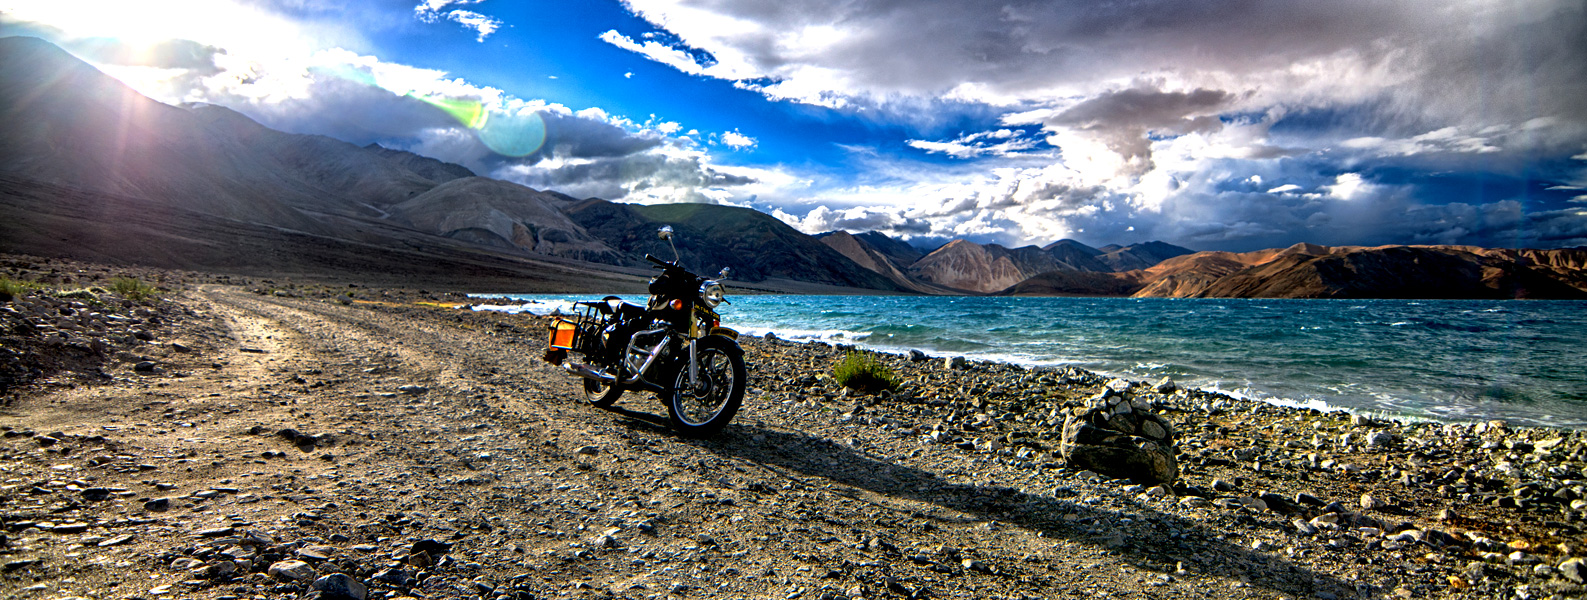 The Ladakh Motorcycle Tour ( Manali to Leh)